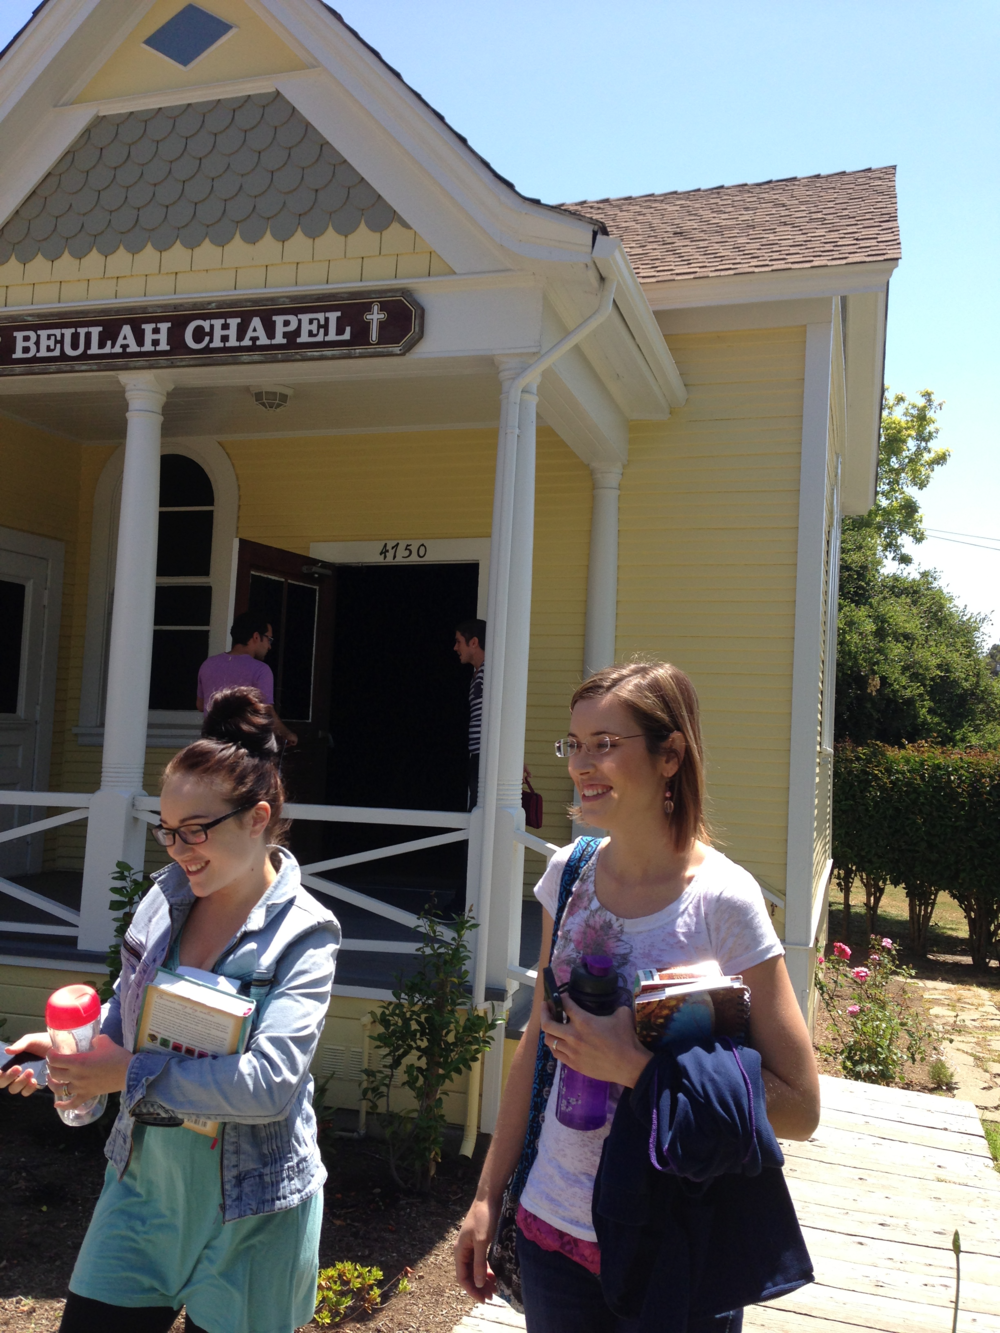 Beulah Chapel just outside the Home of Peace. Getting ready to head to SFO.